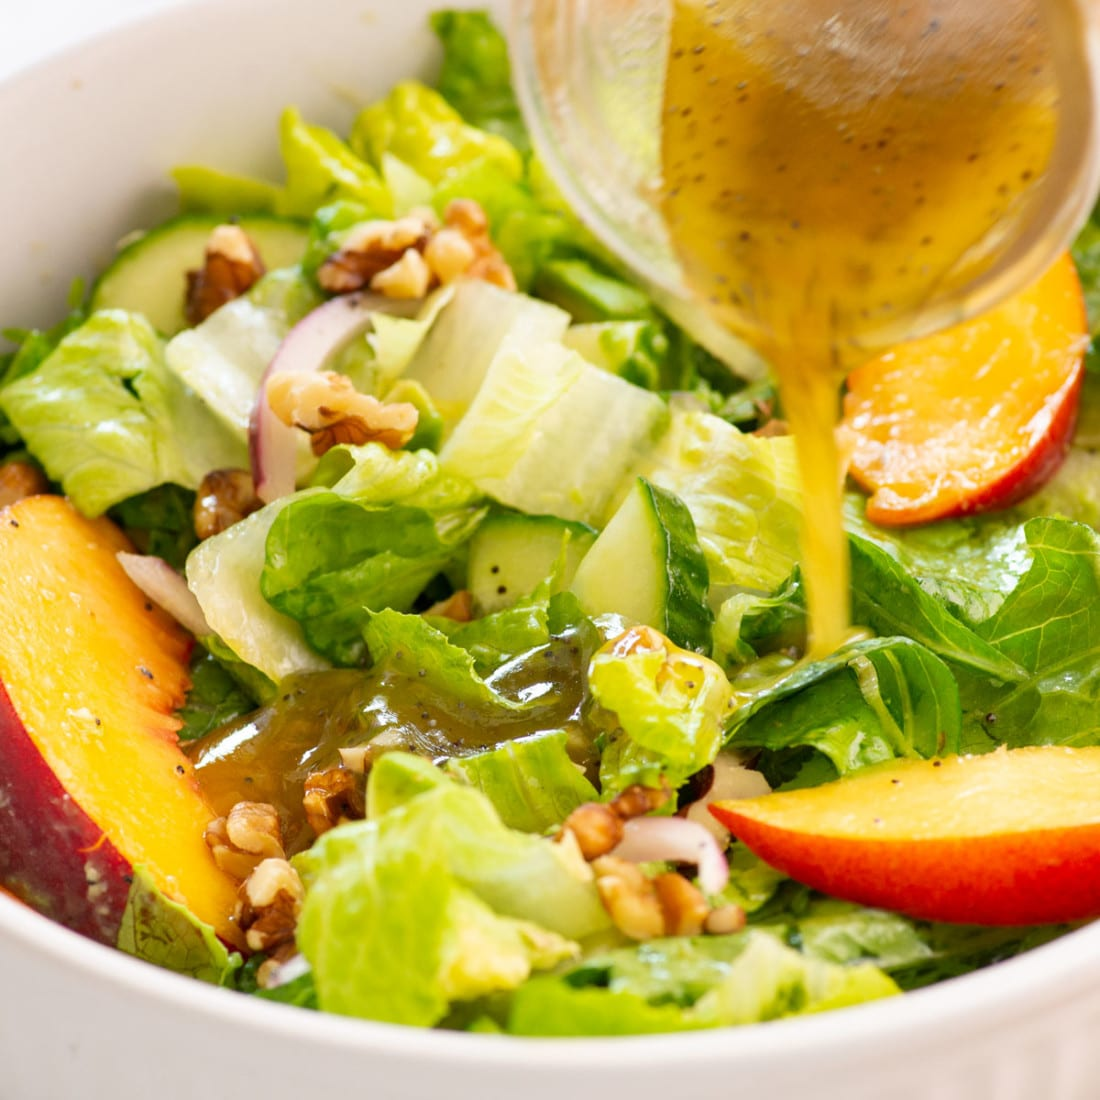 pouring dressing on top of green salad